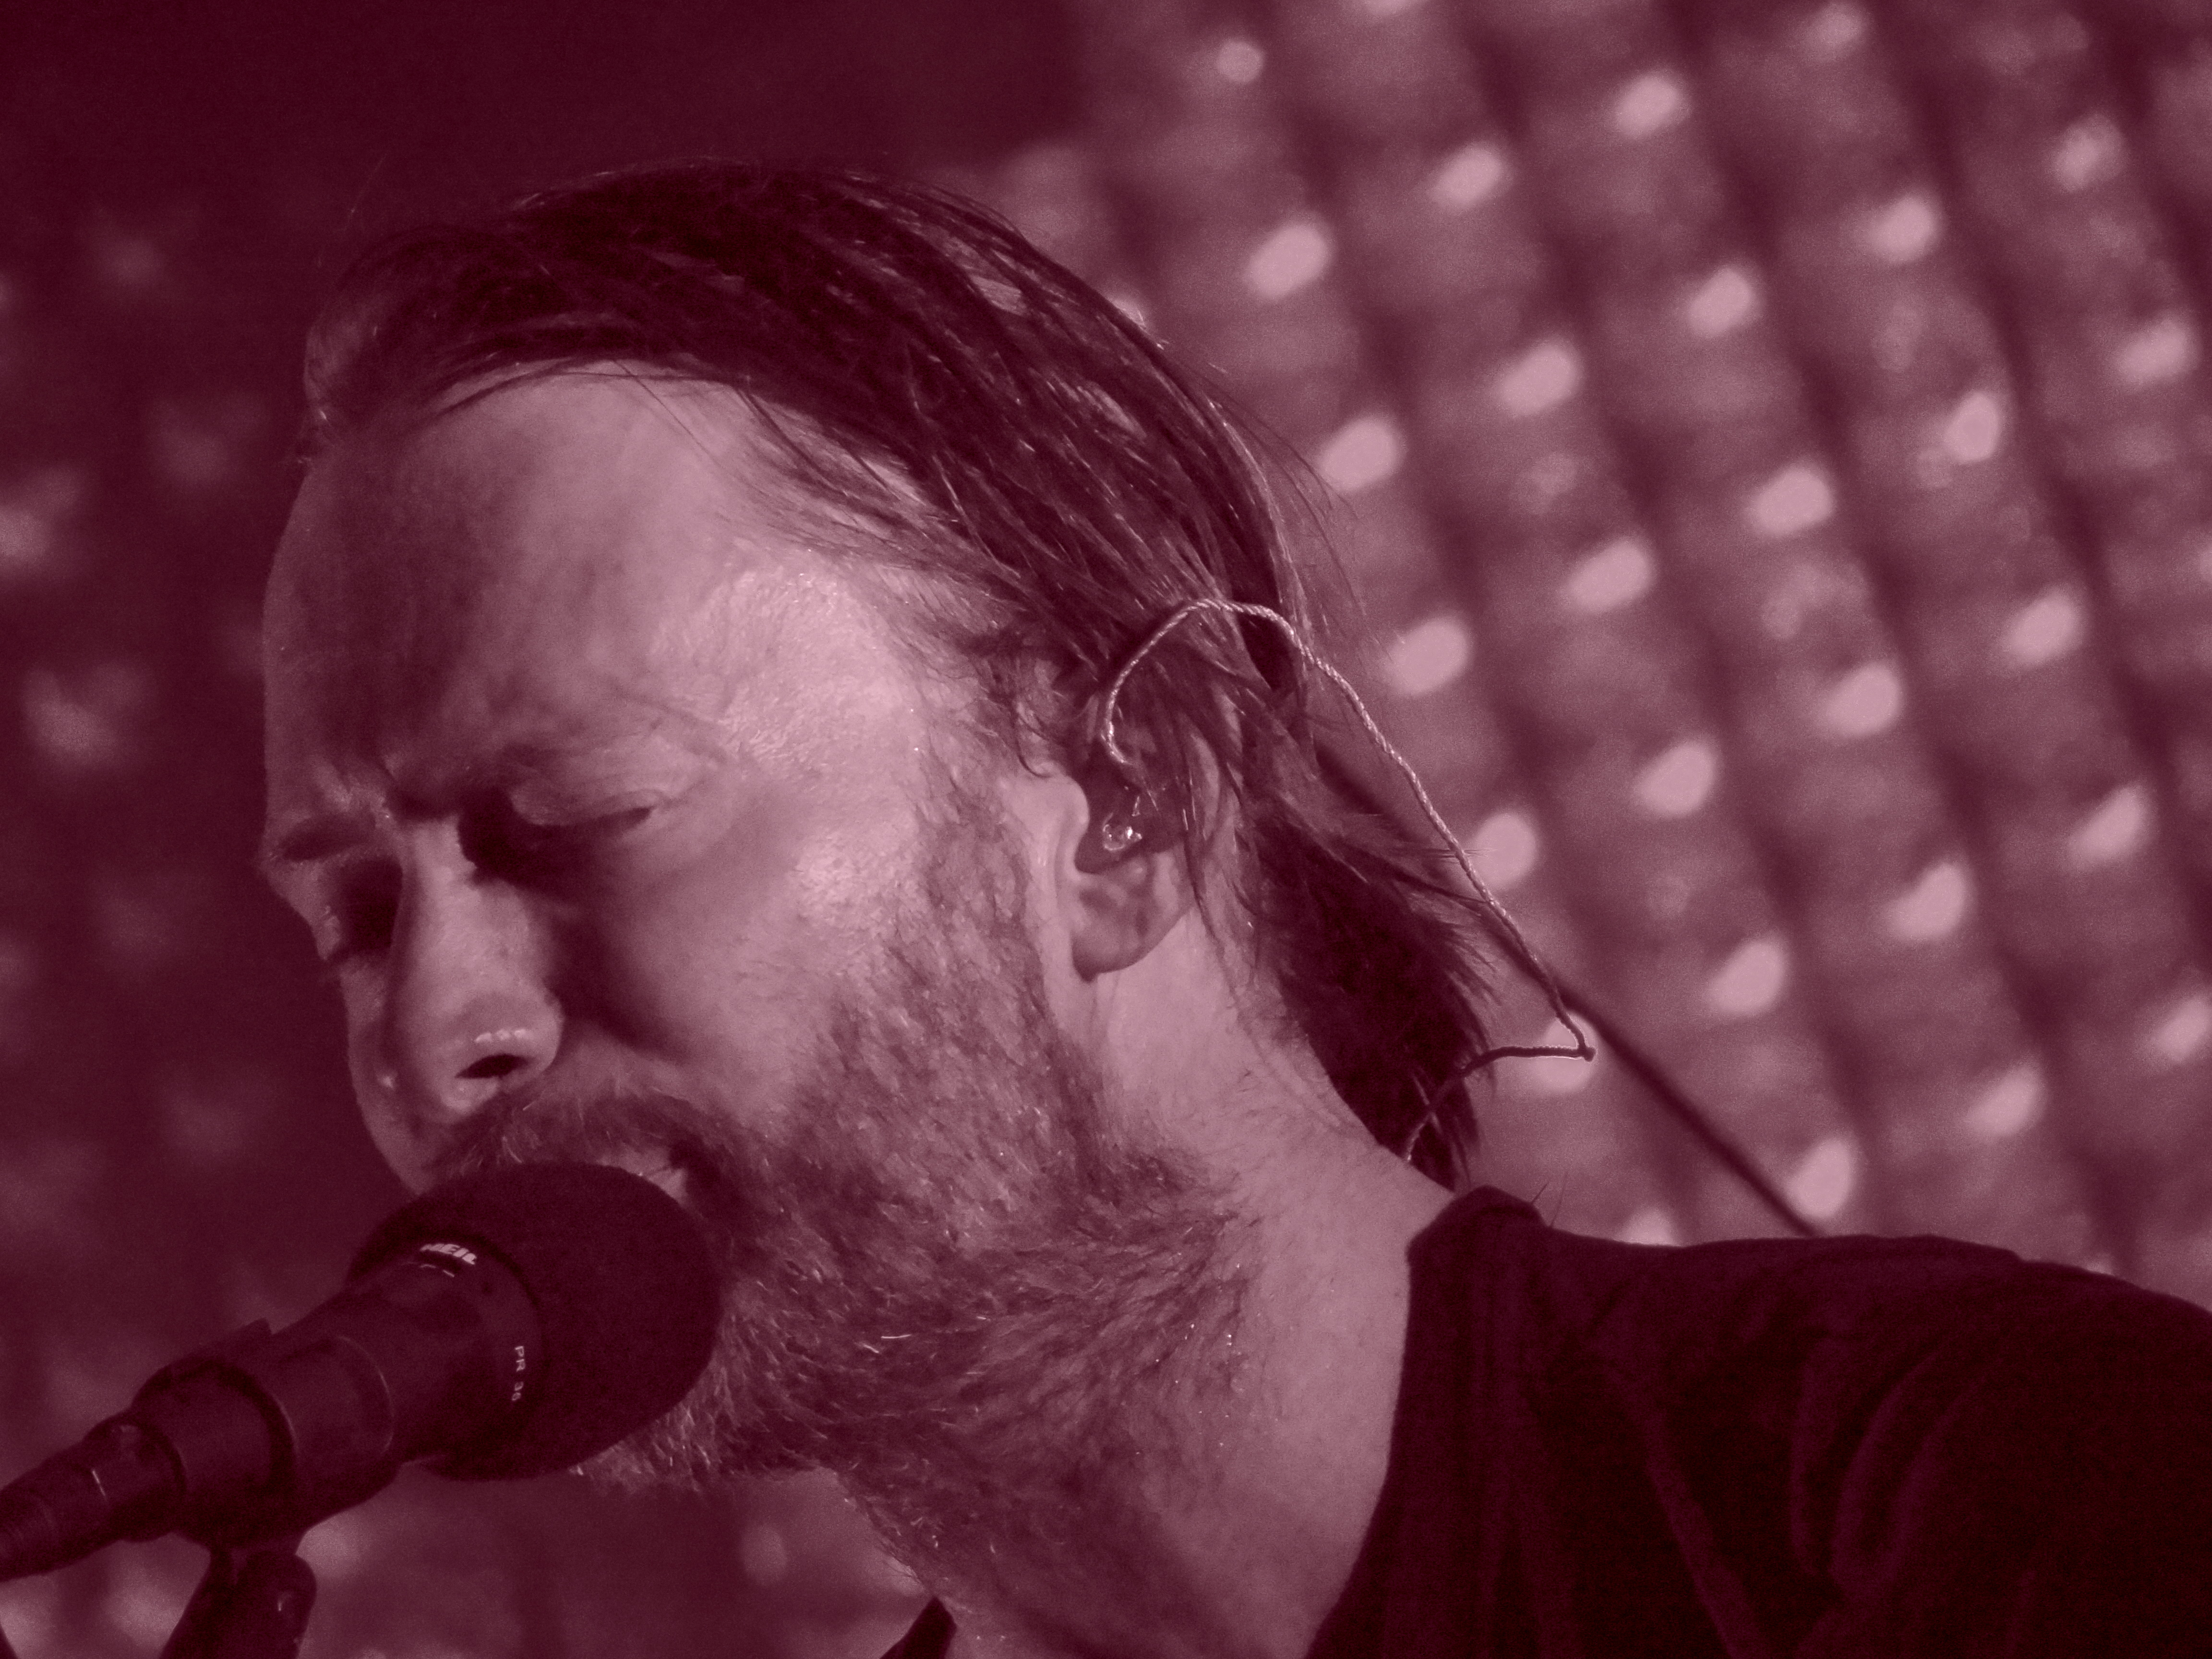 Radiohead photo by Michael Kurman